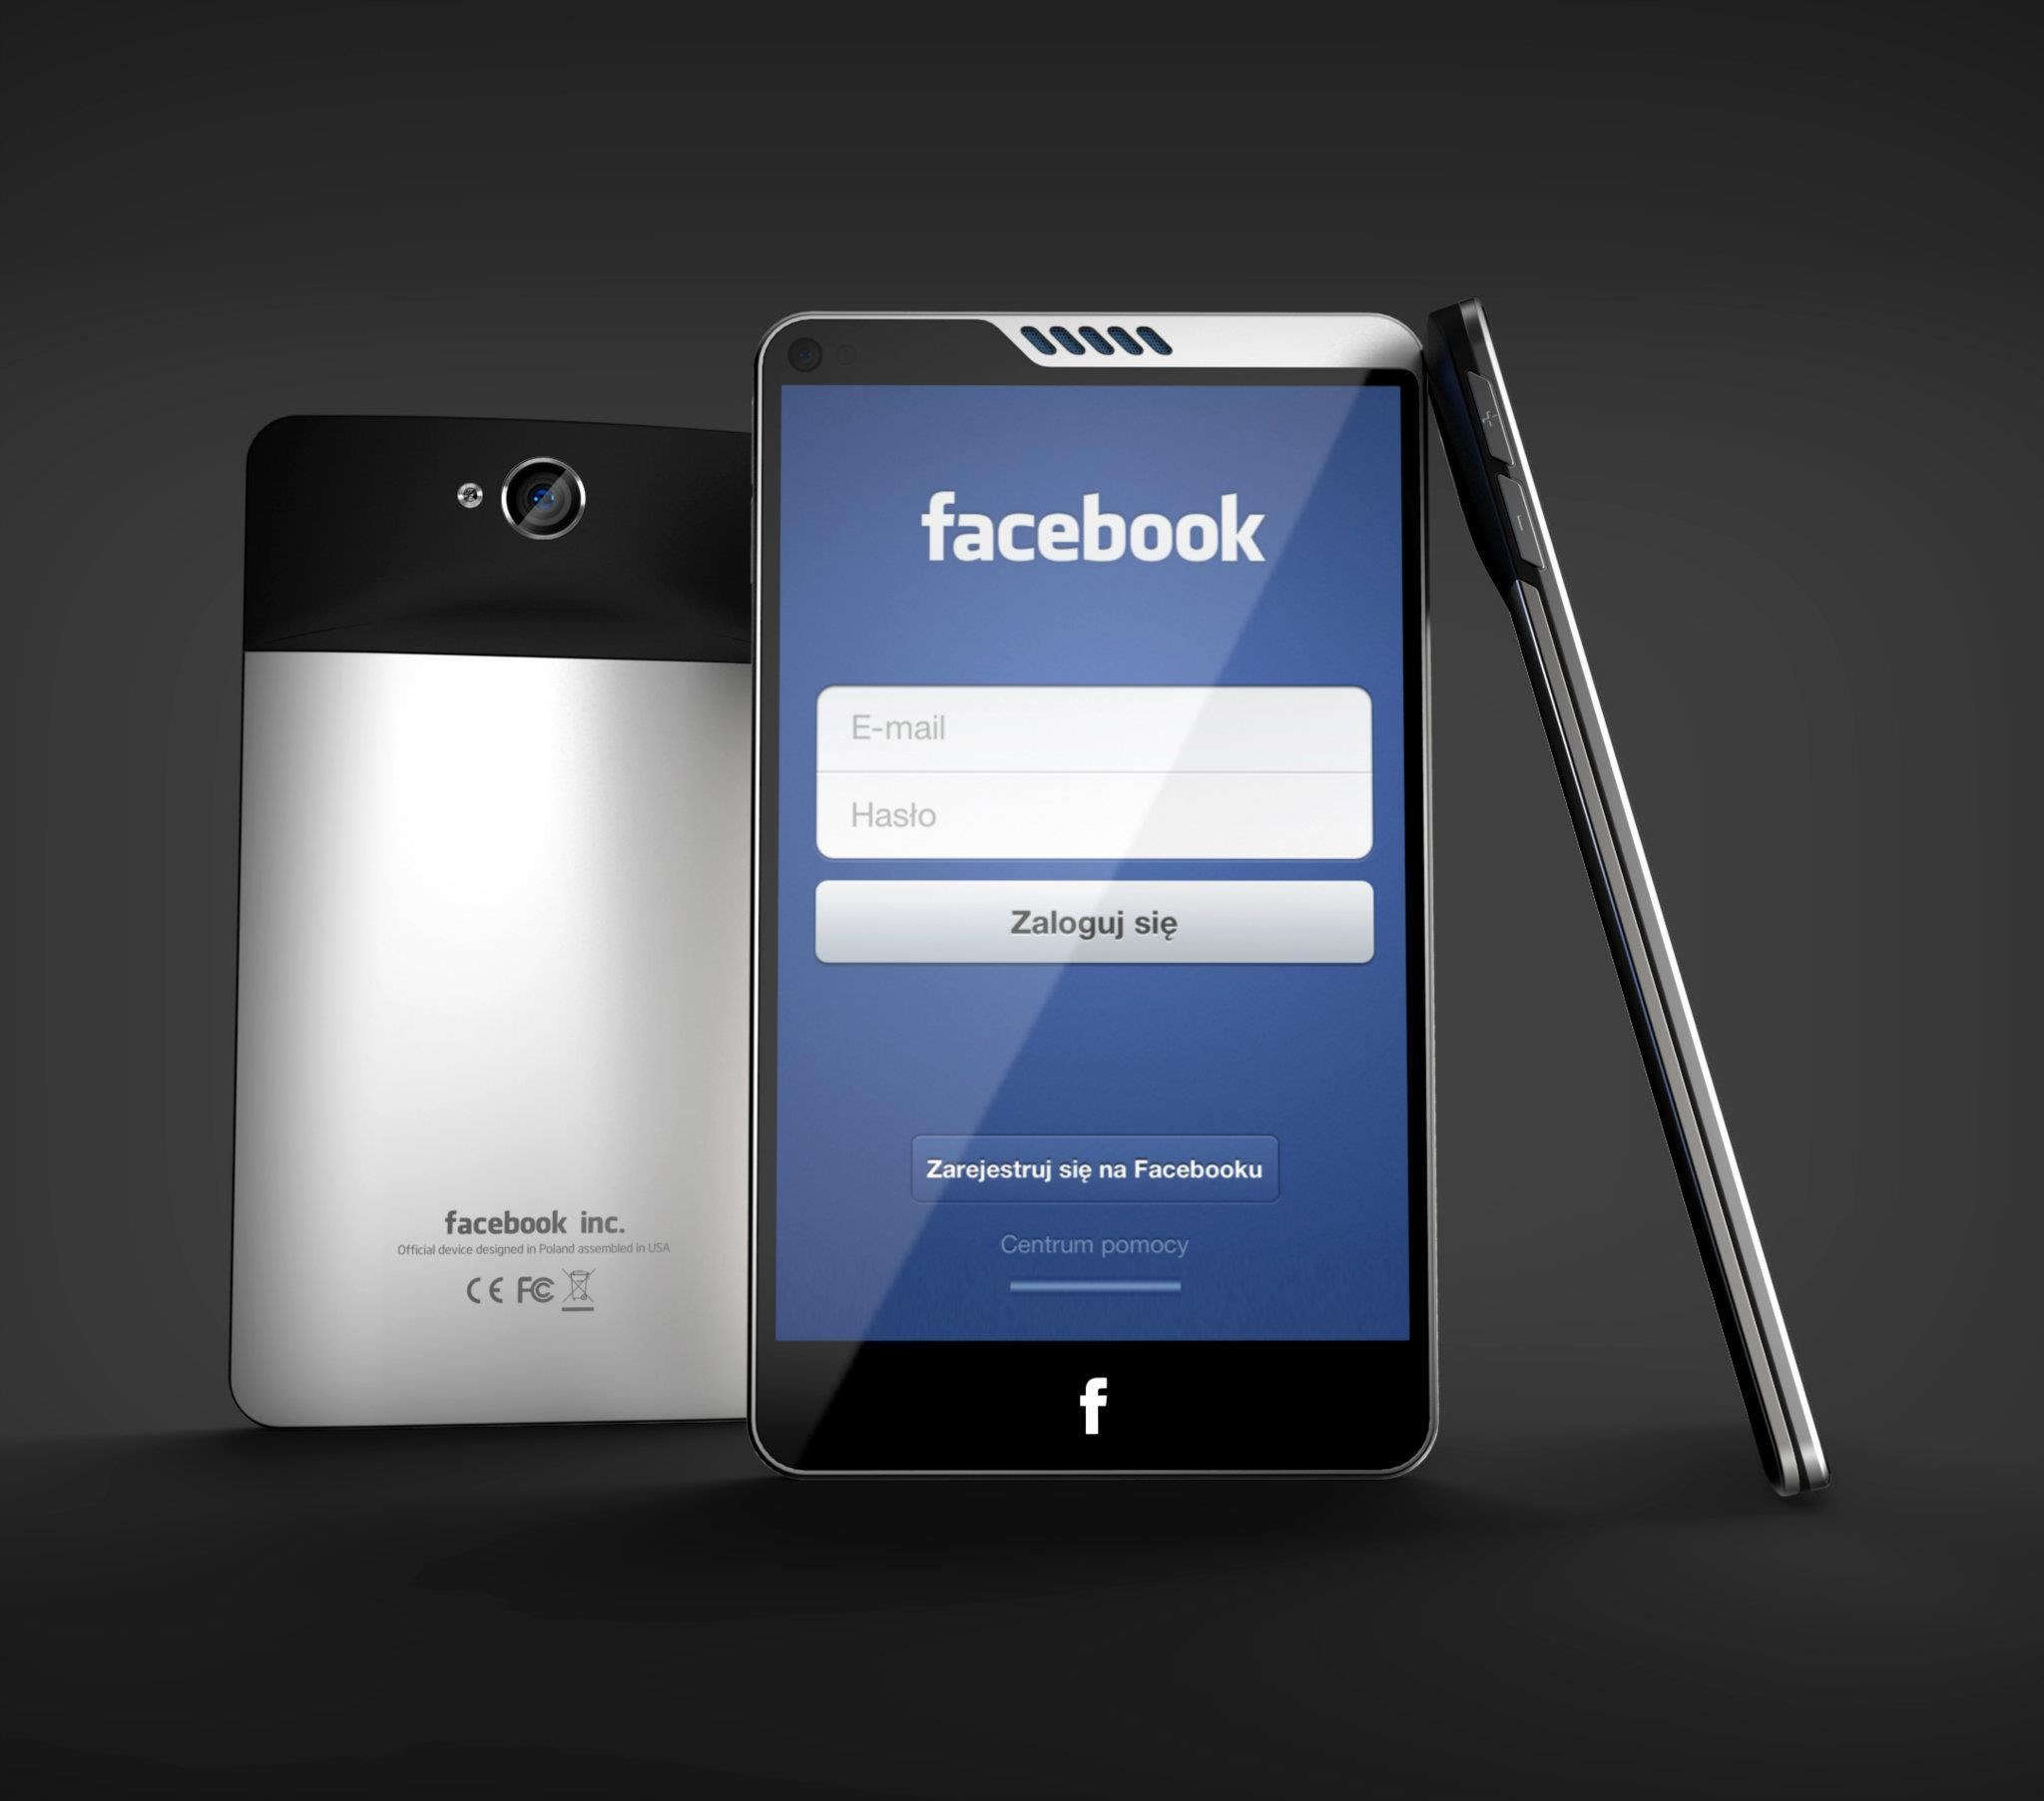 Facebook, Android, HTC, CEO Mark Zuckerberg, mobile-news